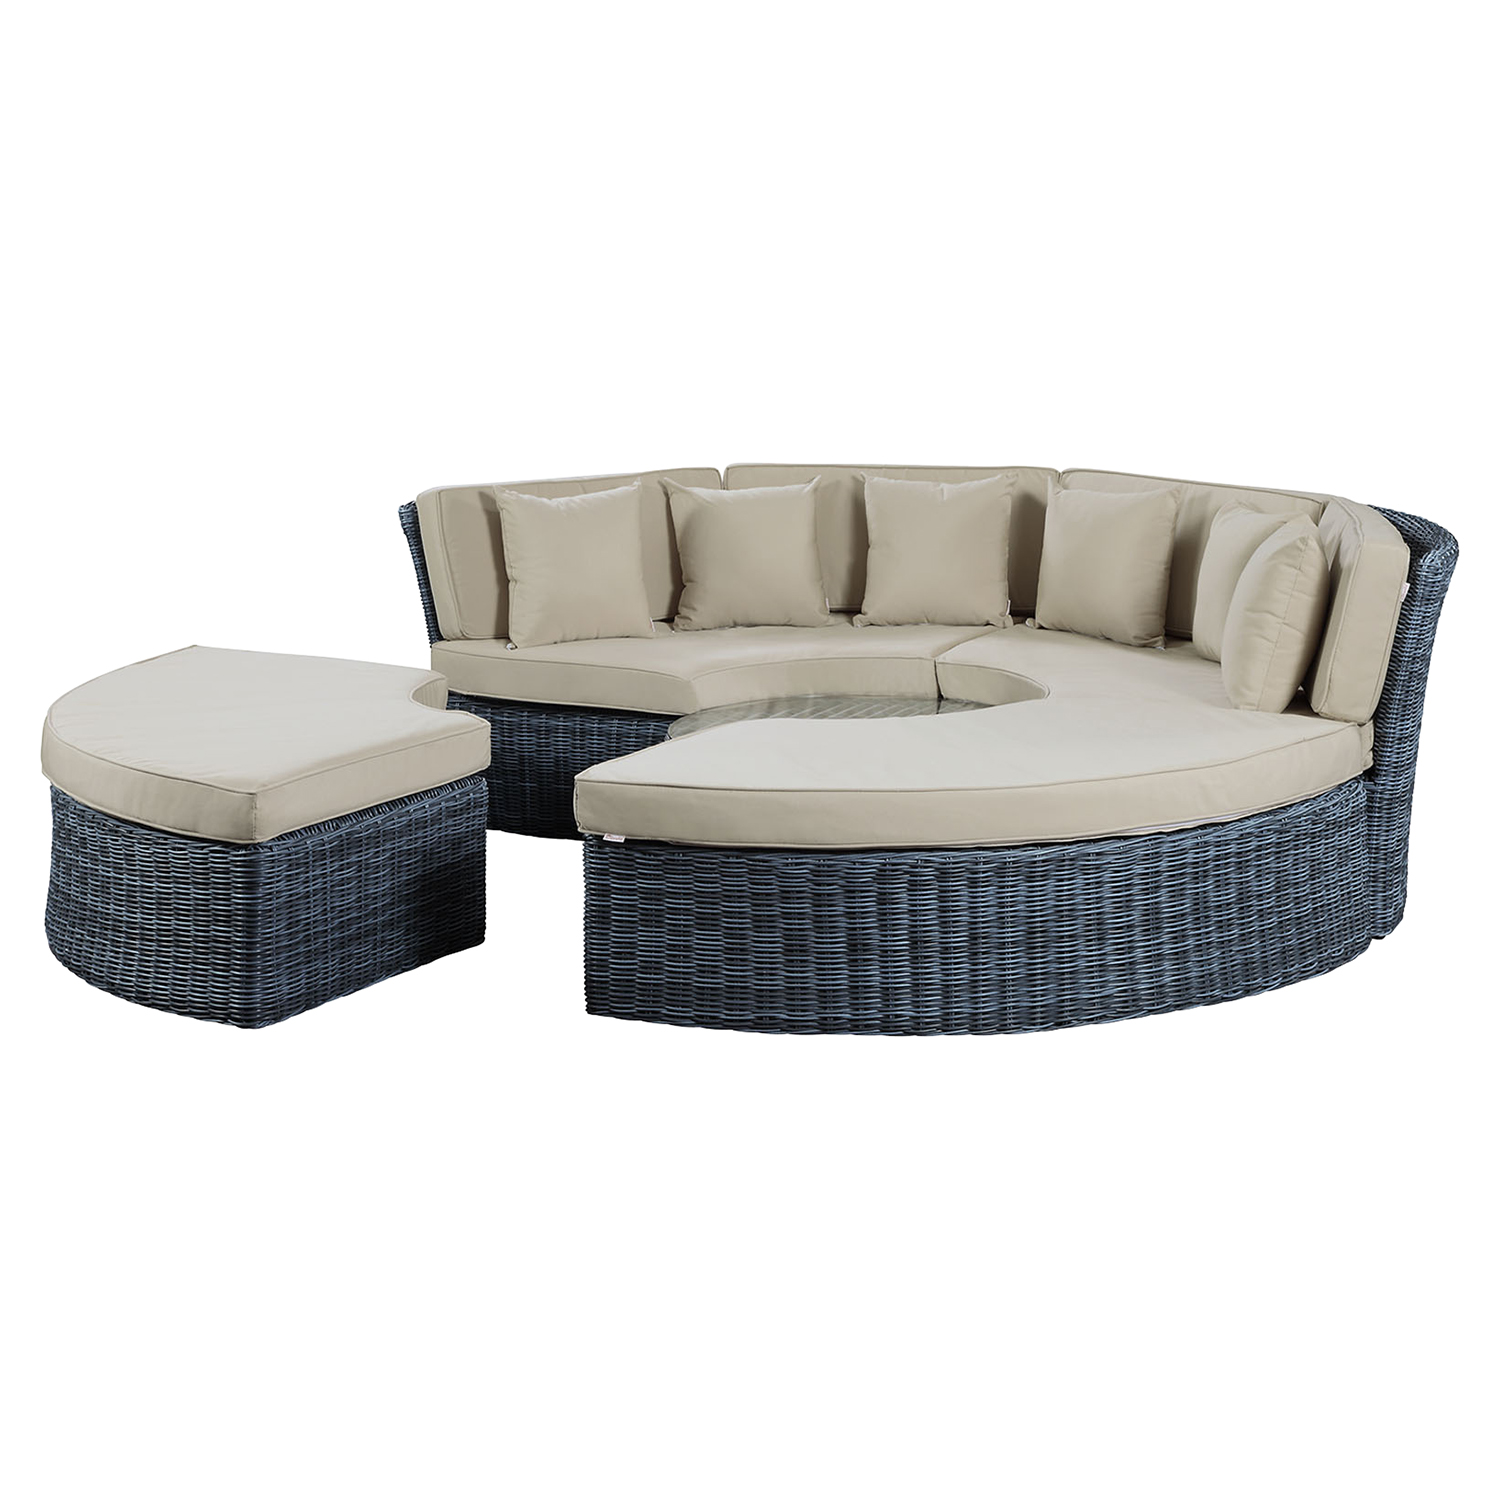 Summon Circular Outdoor Patio Daybed - Sunbrella Antique Canvas Beige - EEI-1995-GRY-BEI-SET